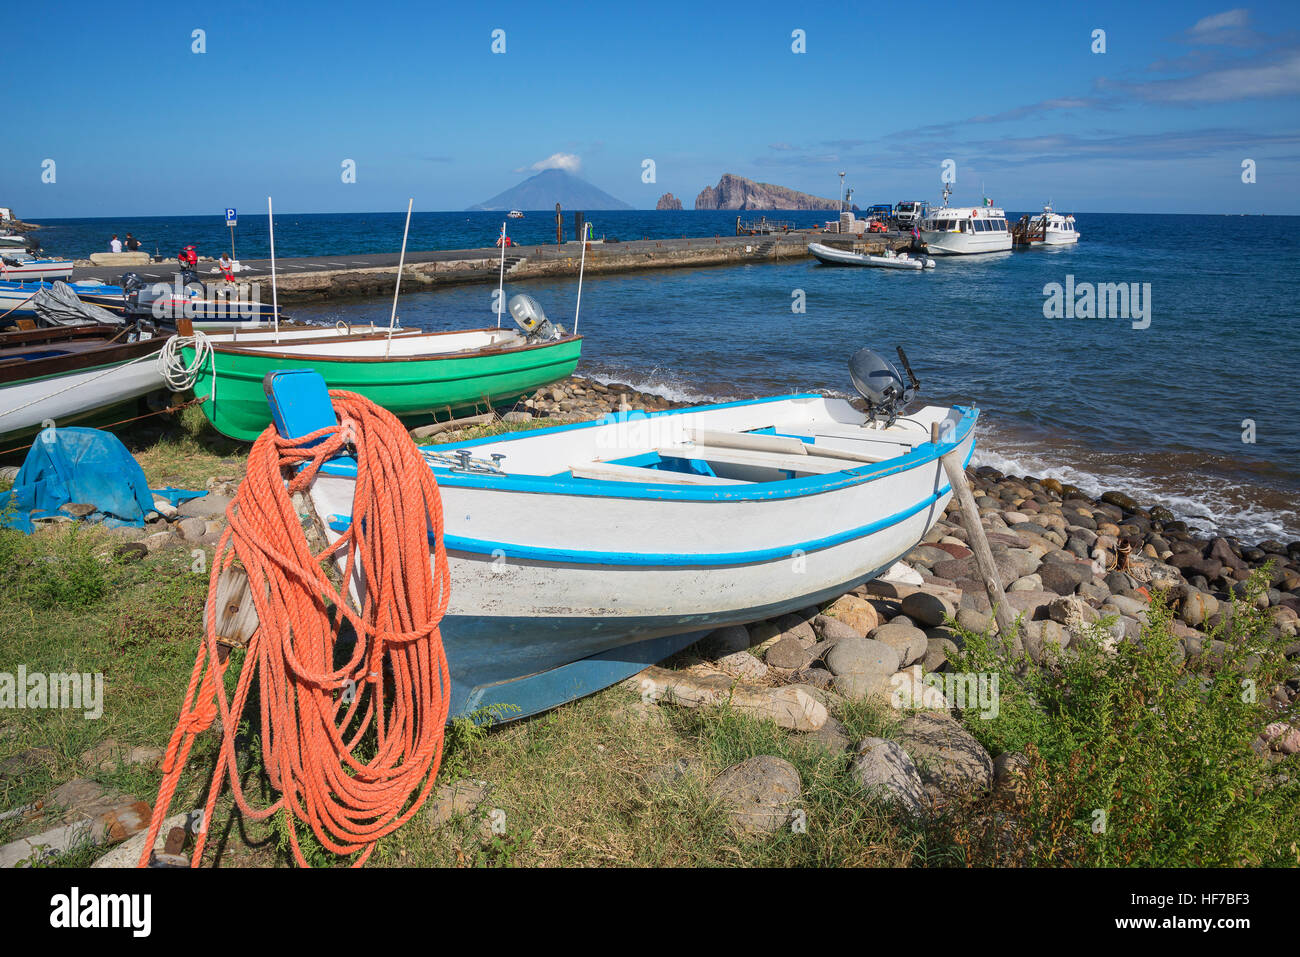 Boats, Panarea, Aeolian Islands, Sicily, Italy, Europe, - Stock Image